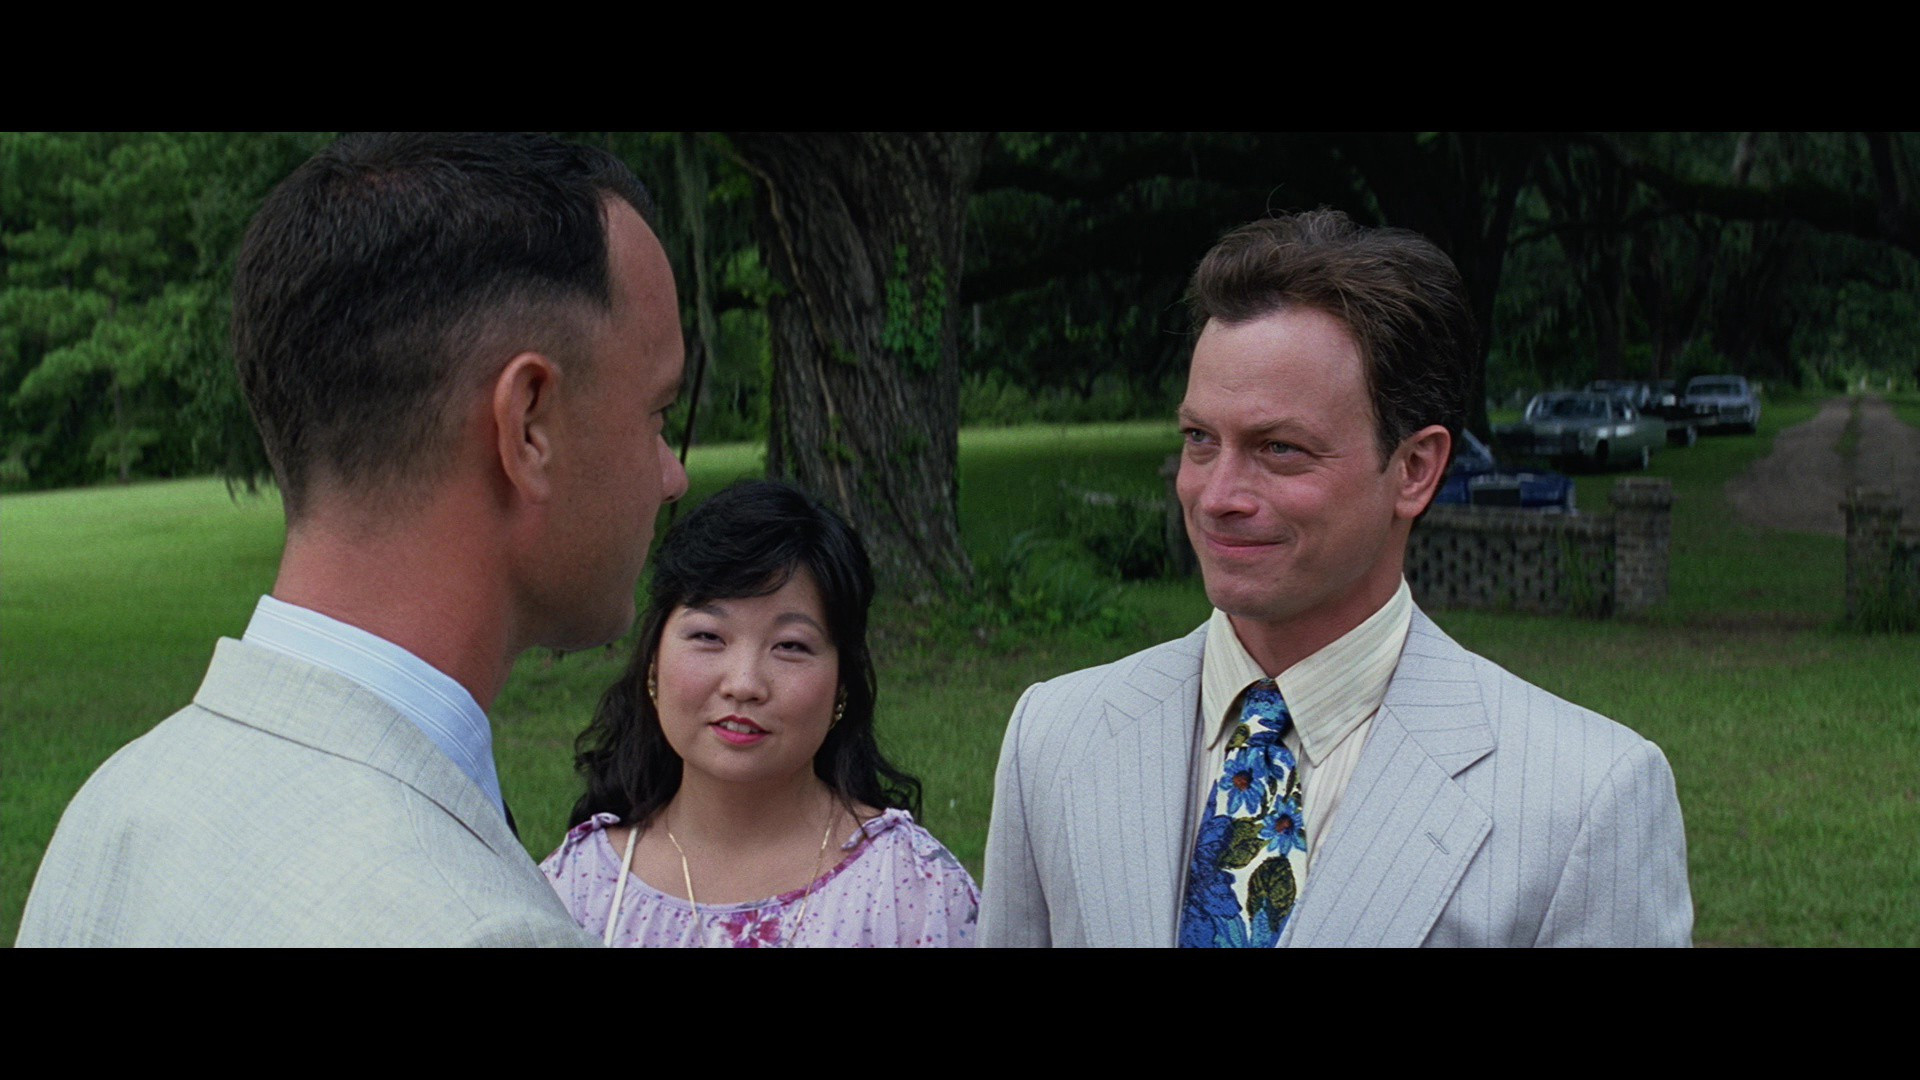 Yes Forrest Gump Is Still A Masterpiece You Horrible Cynical People